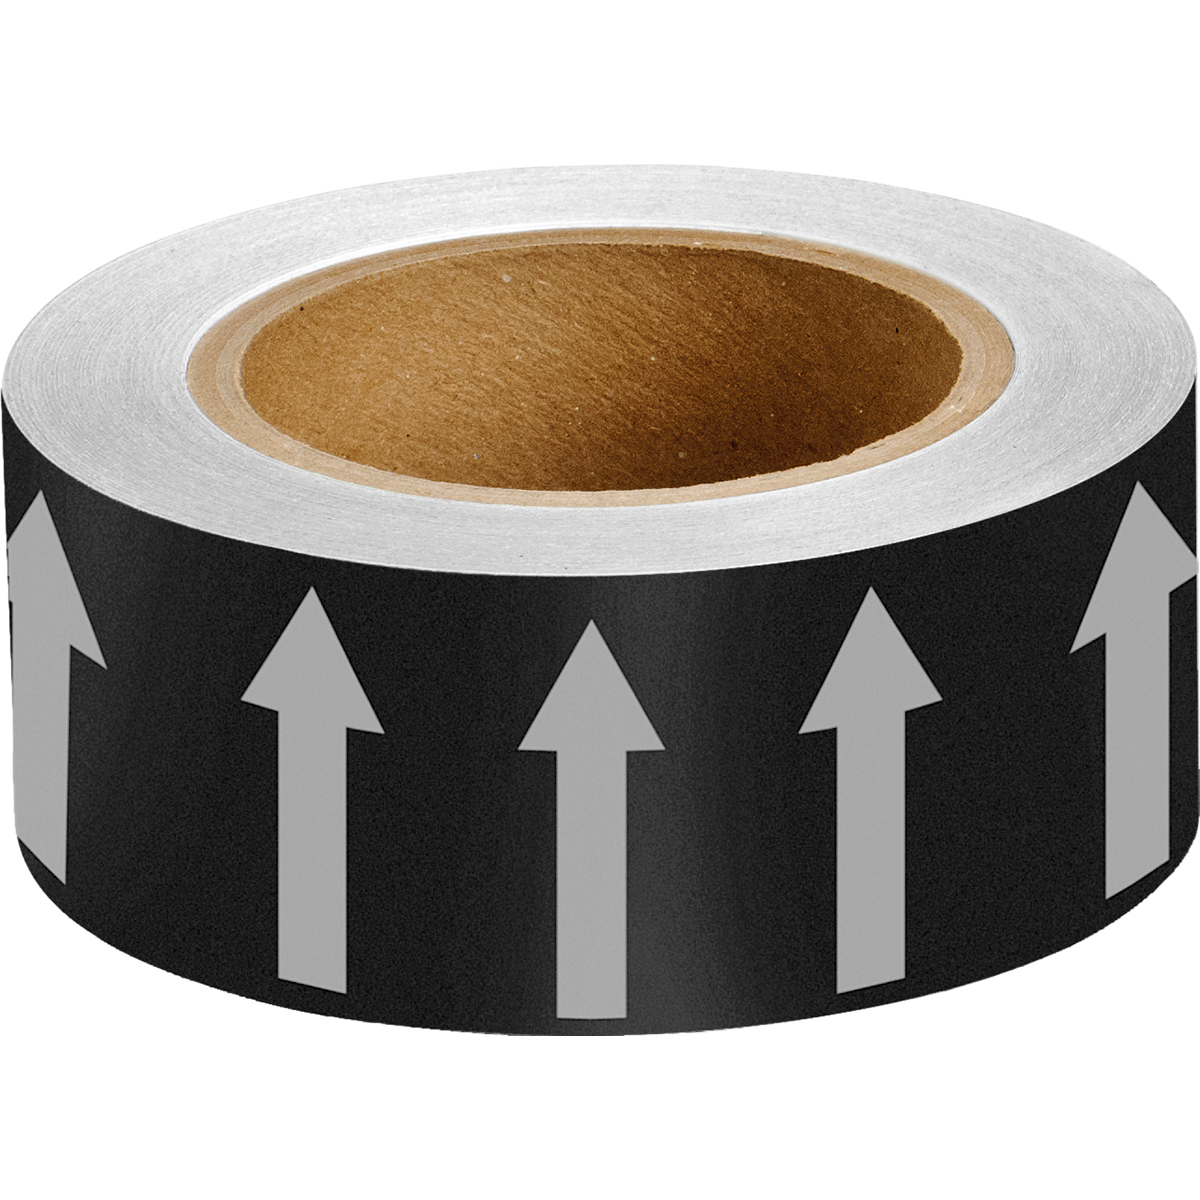 White on Black 50mm Directional Flow Arrow Tape